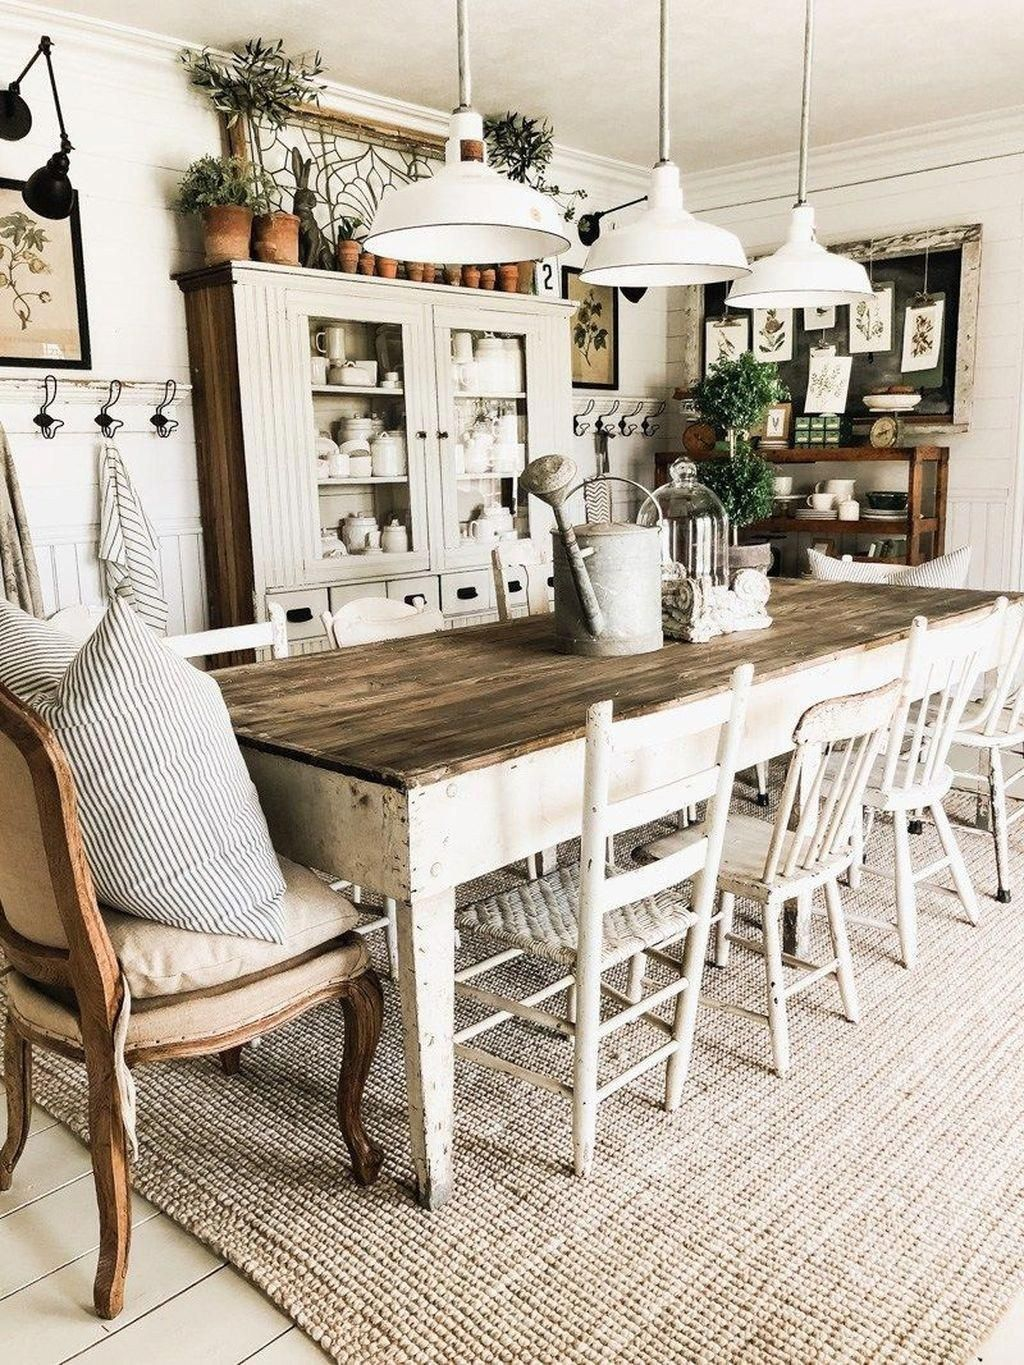 Reasonable Traveled Boho Decor Ideas Click This Link Here Now